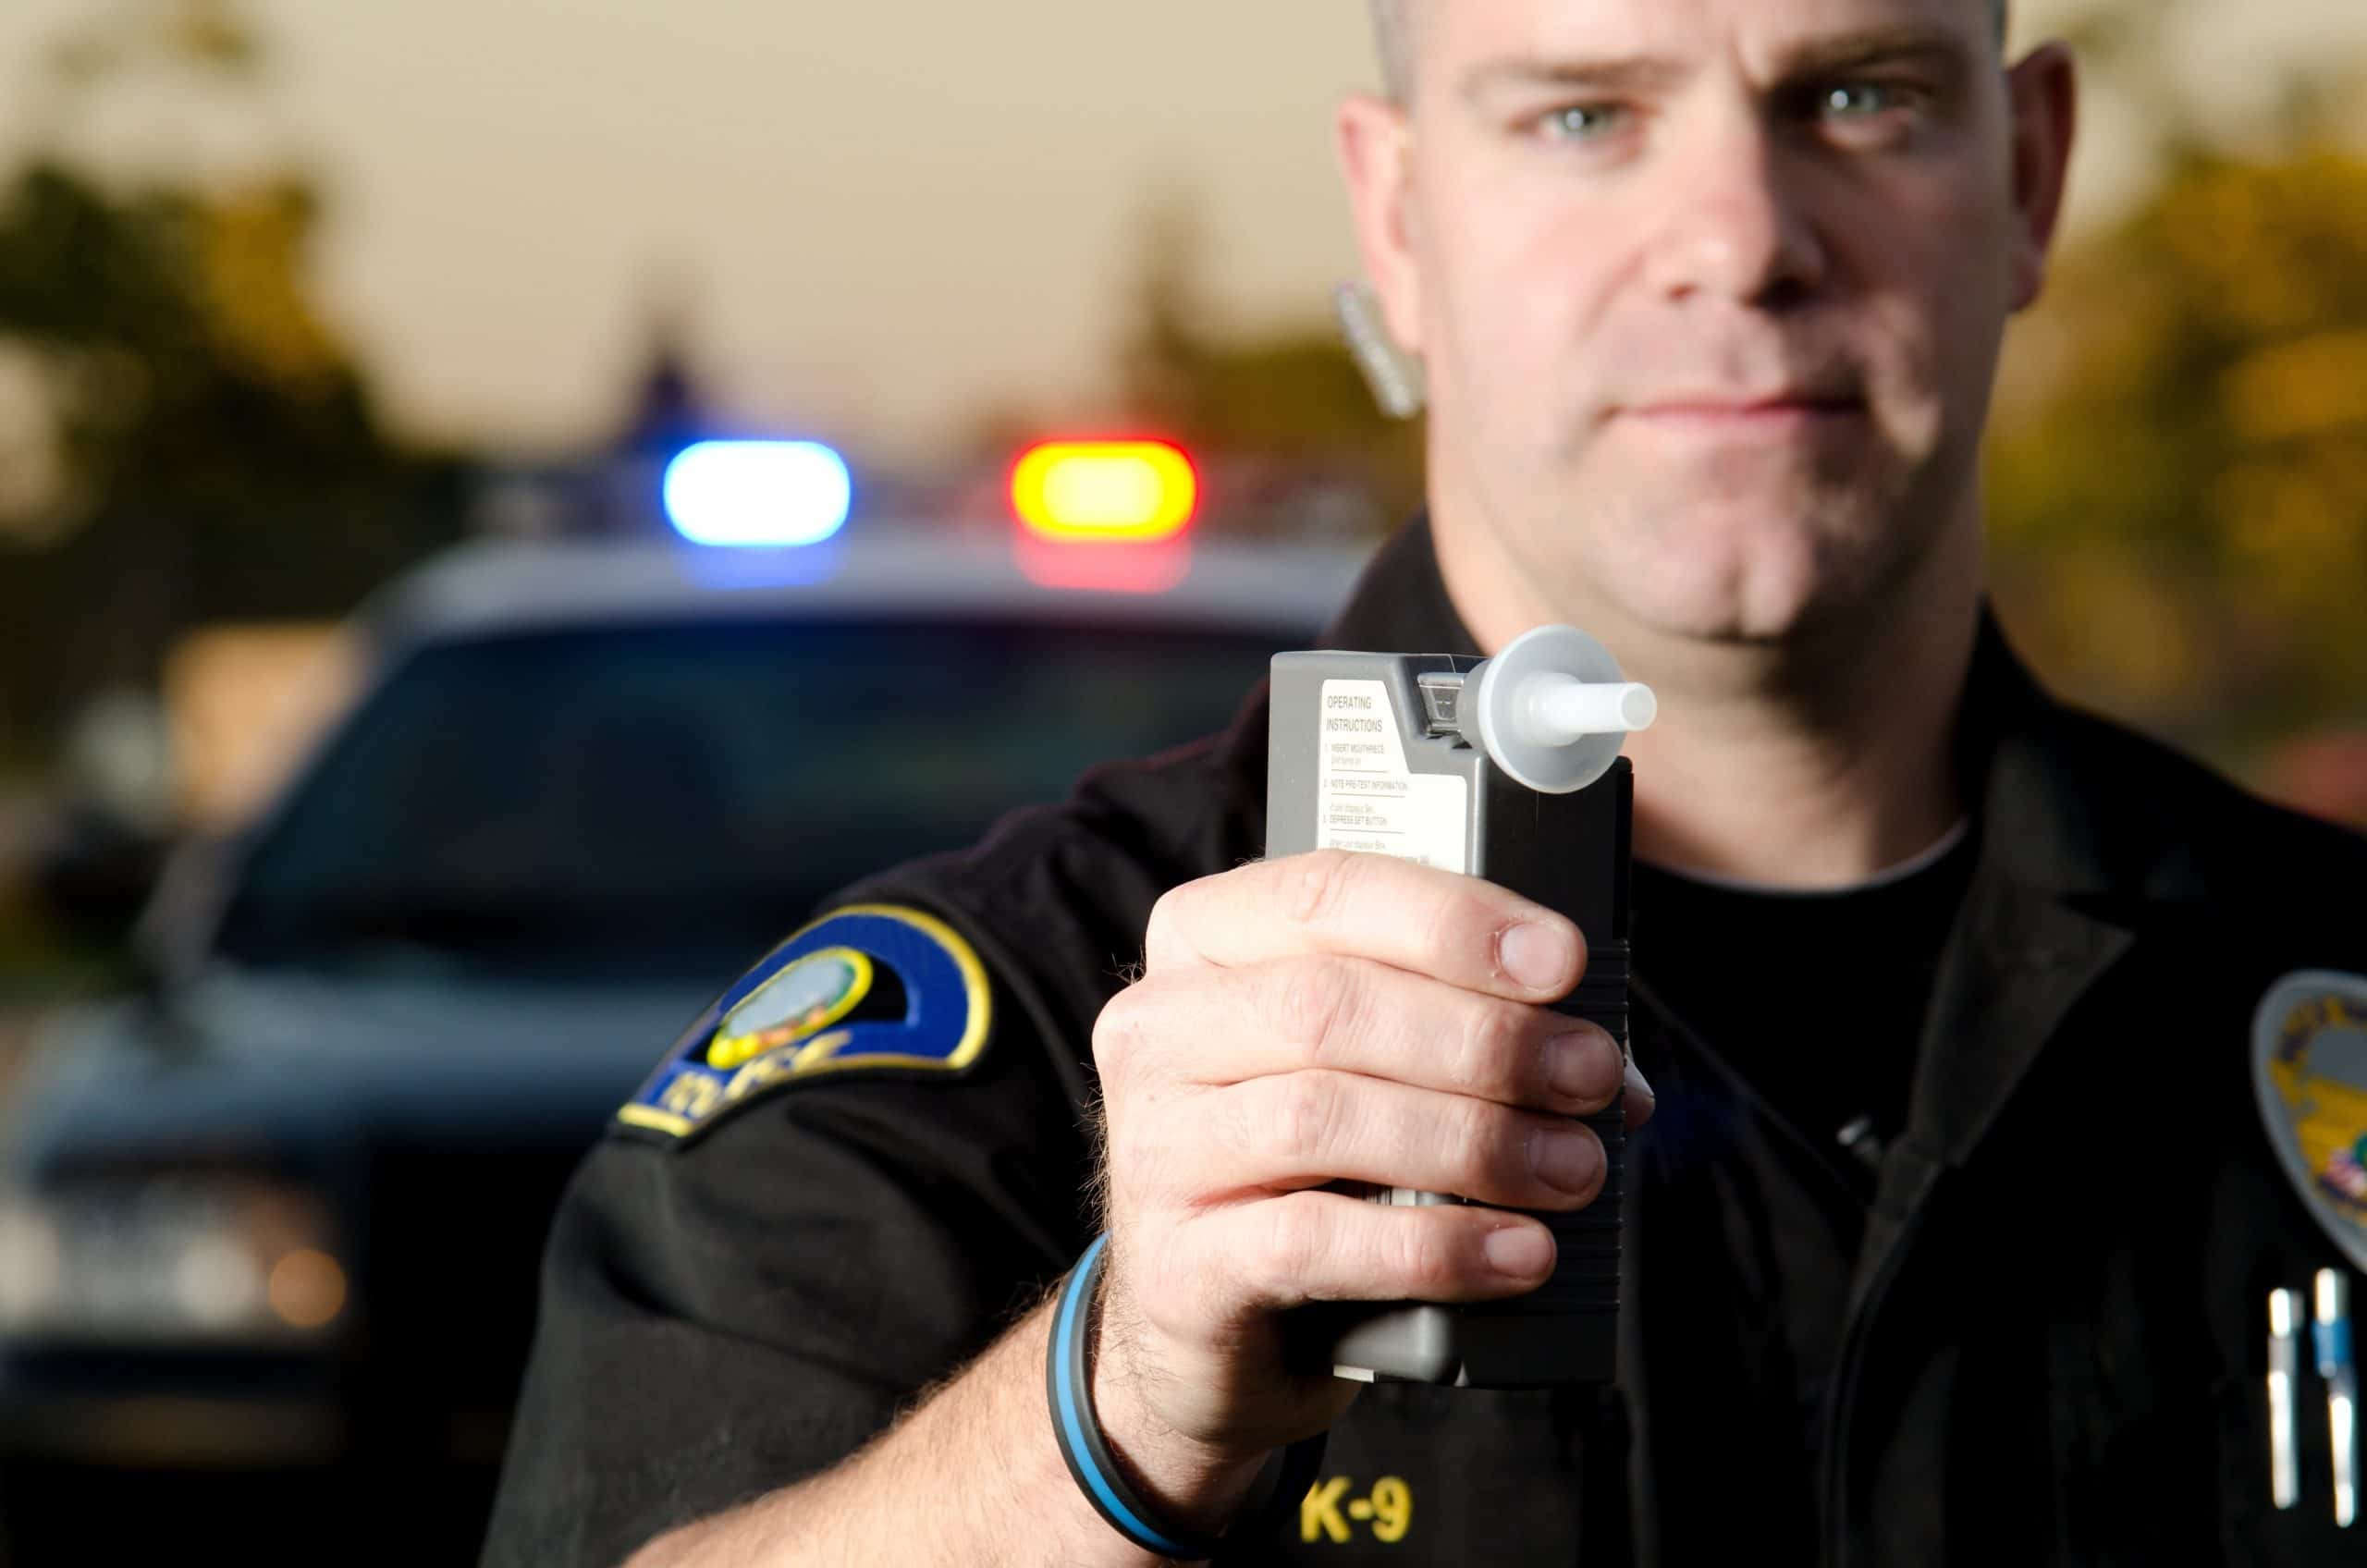 Chemical Blood Alcohol Content Testing Is Required in Minnesota